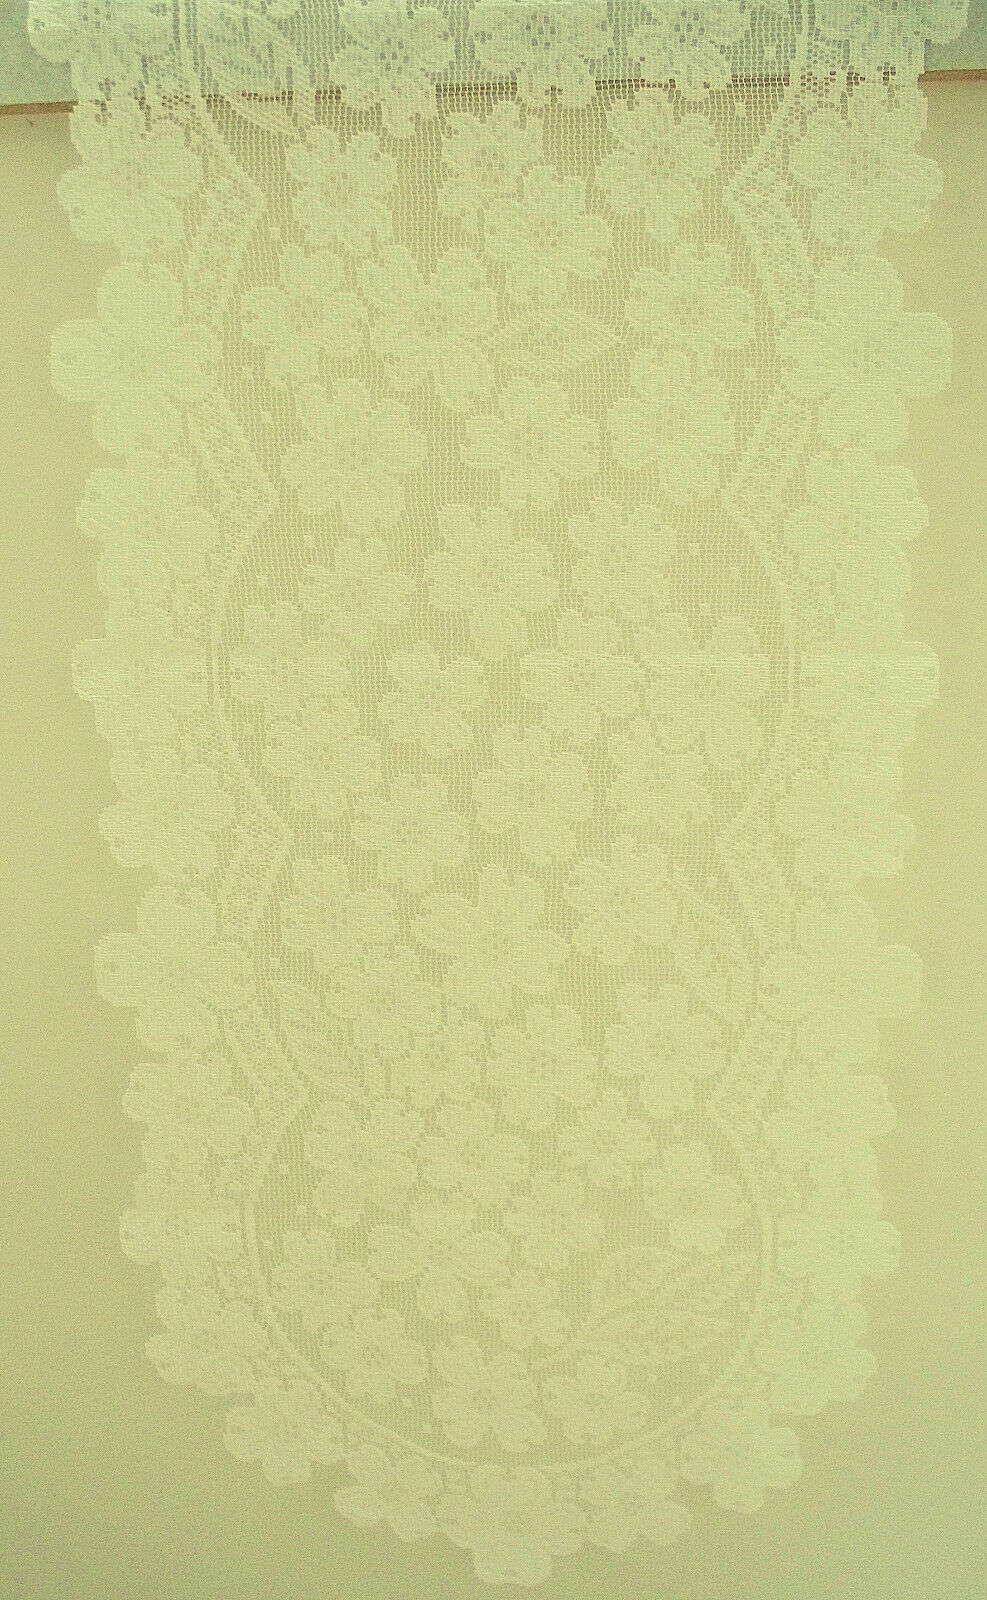 Dogwood 14x53 Ecru Lace Table Runner Heritage Lace